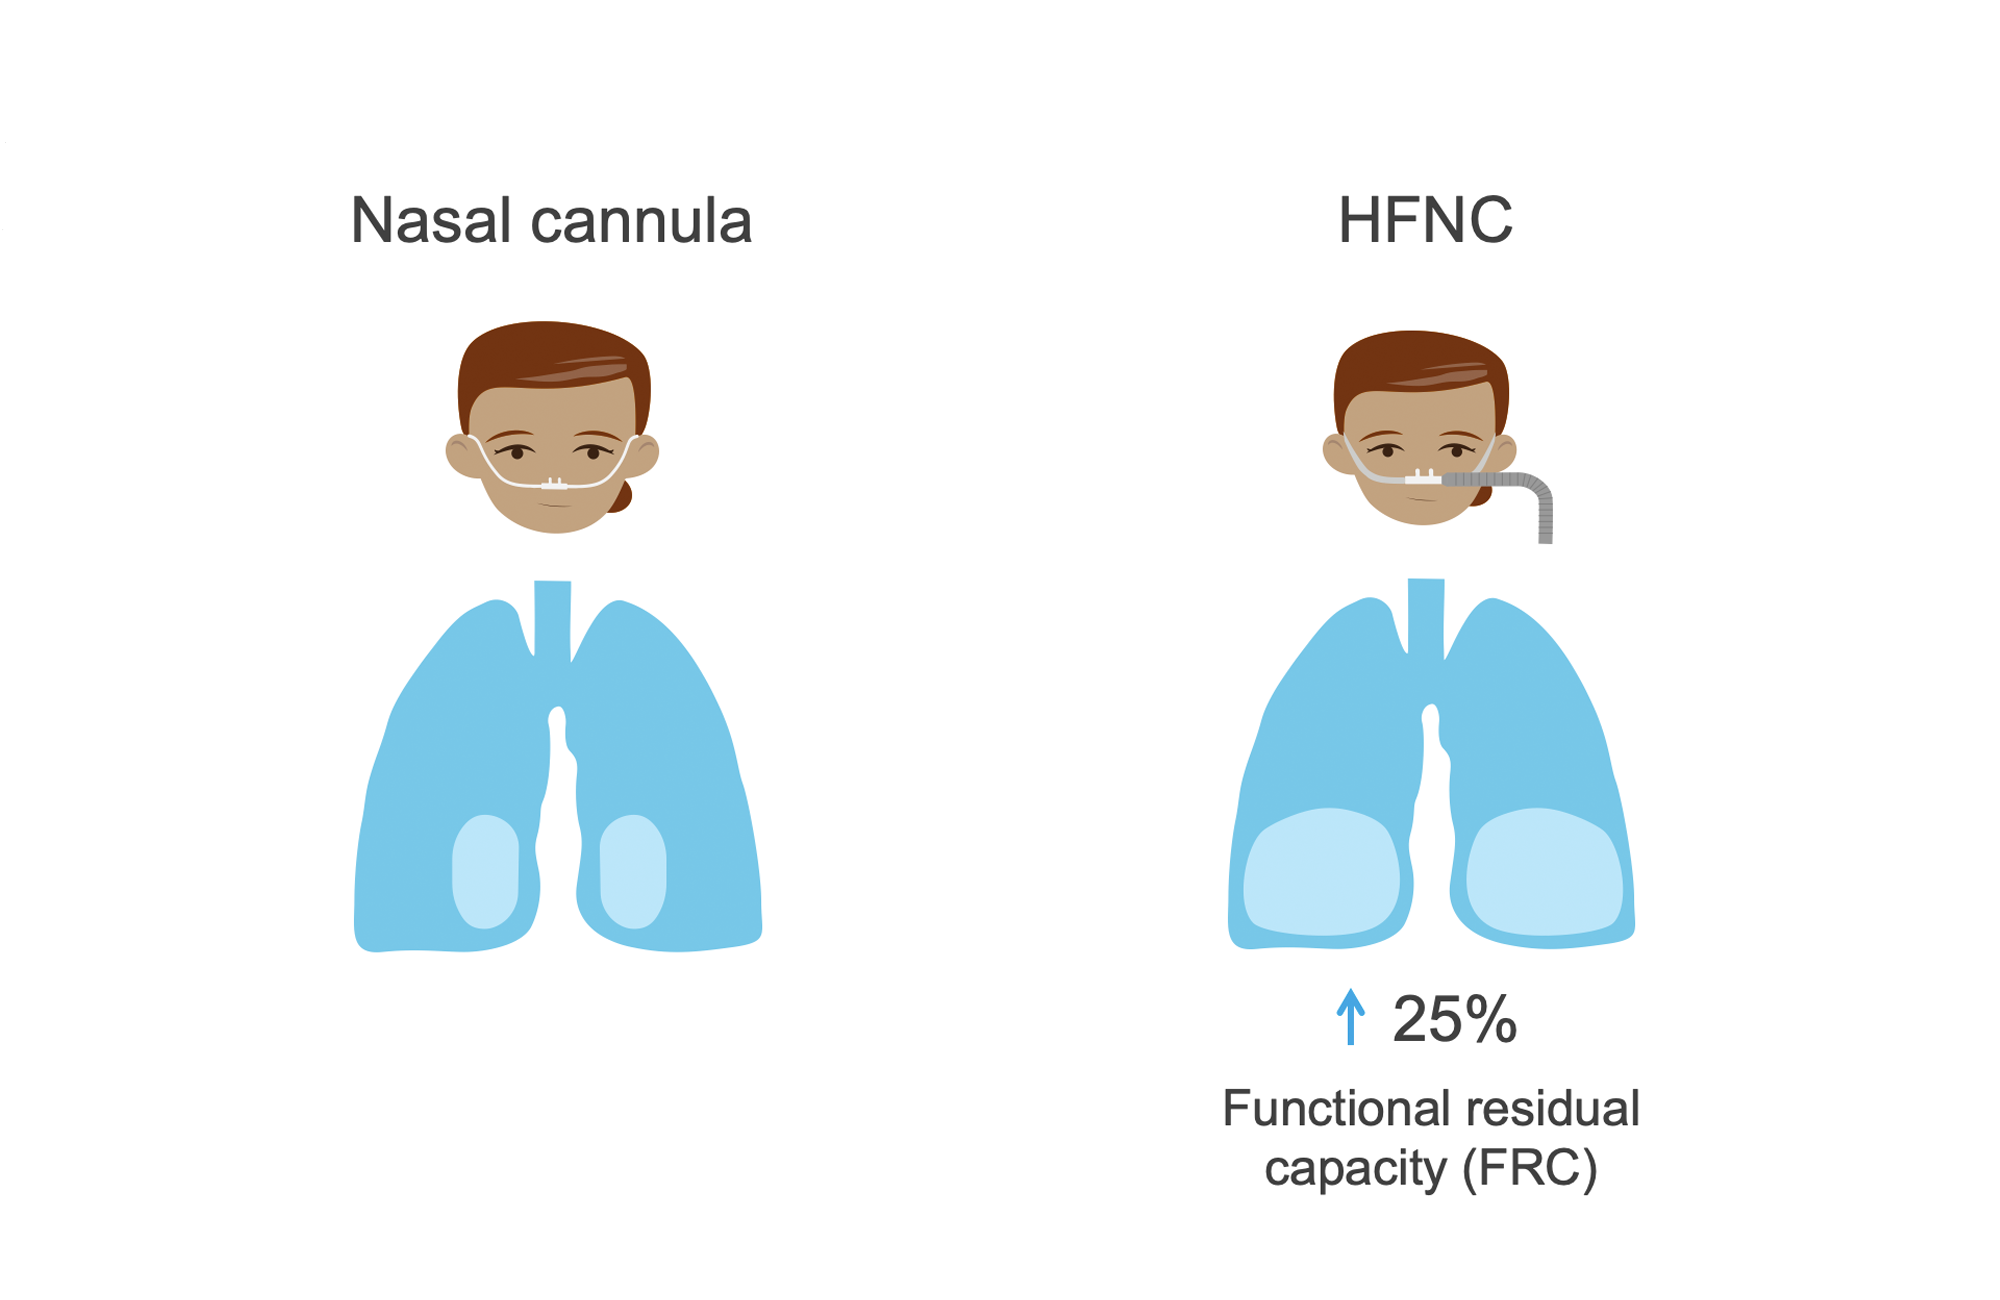 Two women: one with nasal cannula and one with larger tubing indicating high-flow nasal cannula (HFNC). Lungs showing difference in functional residual capacity (FRC) in each condition. Illustration.